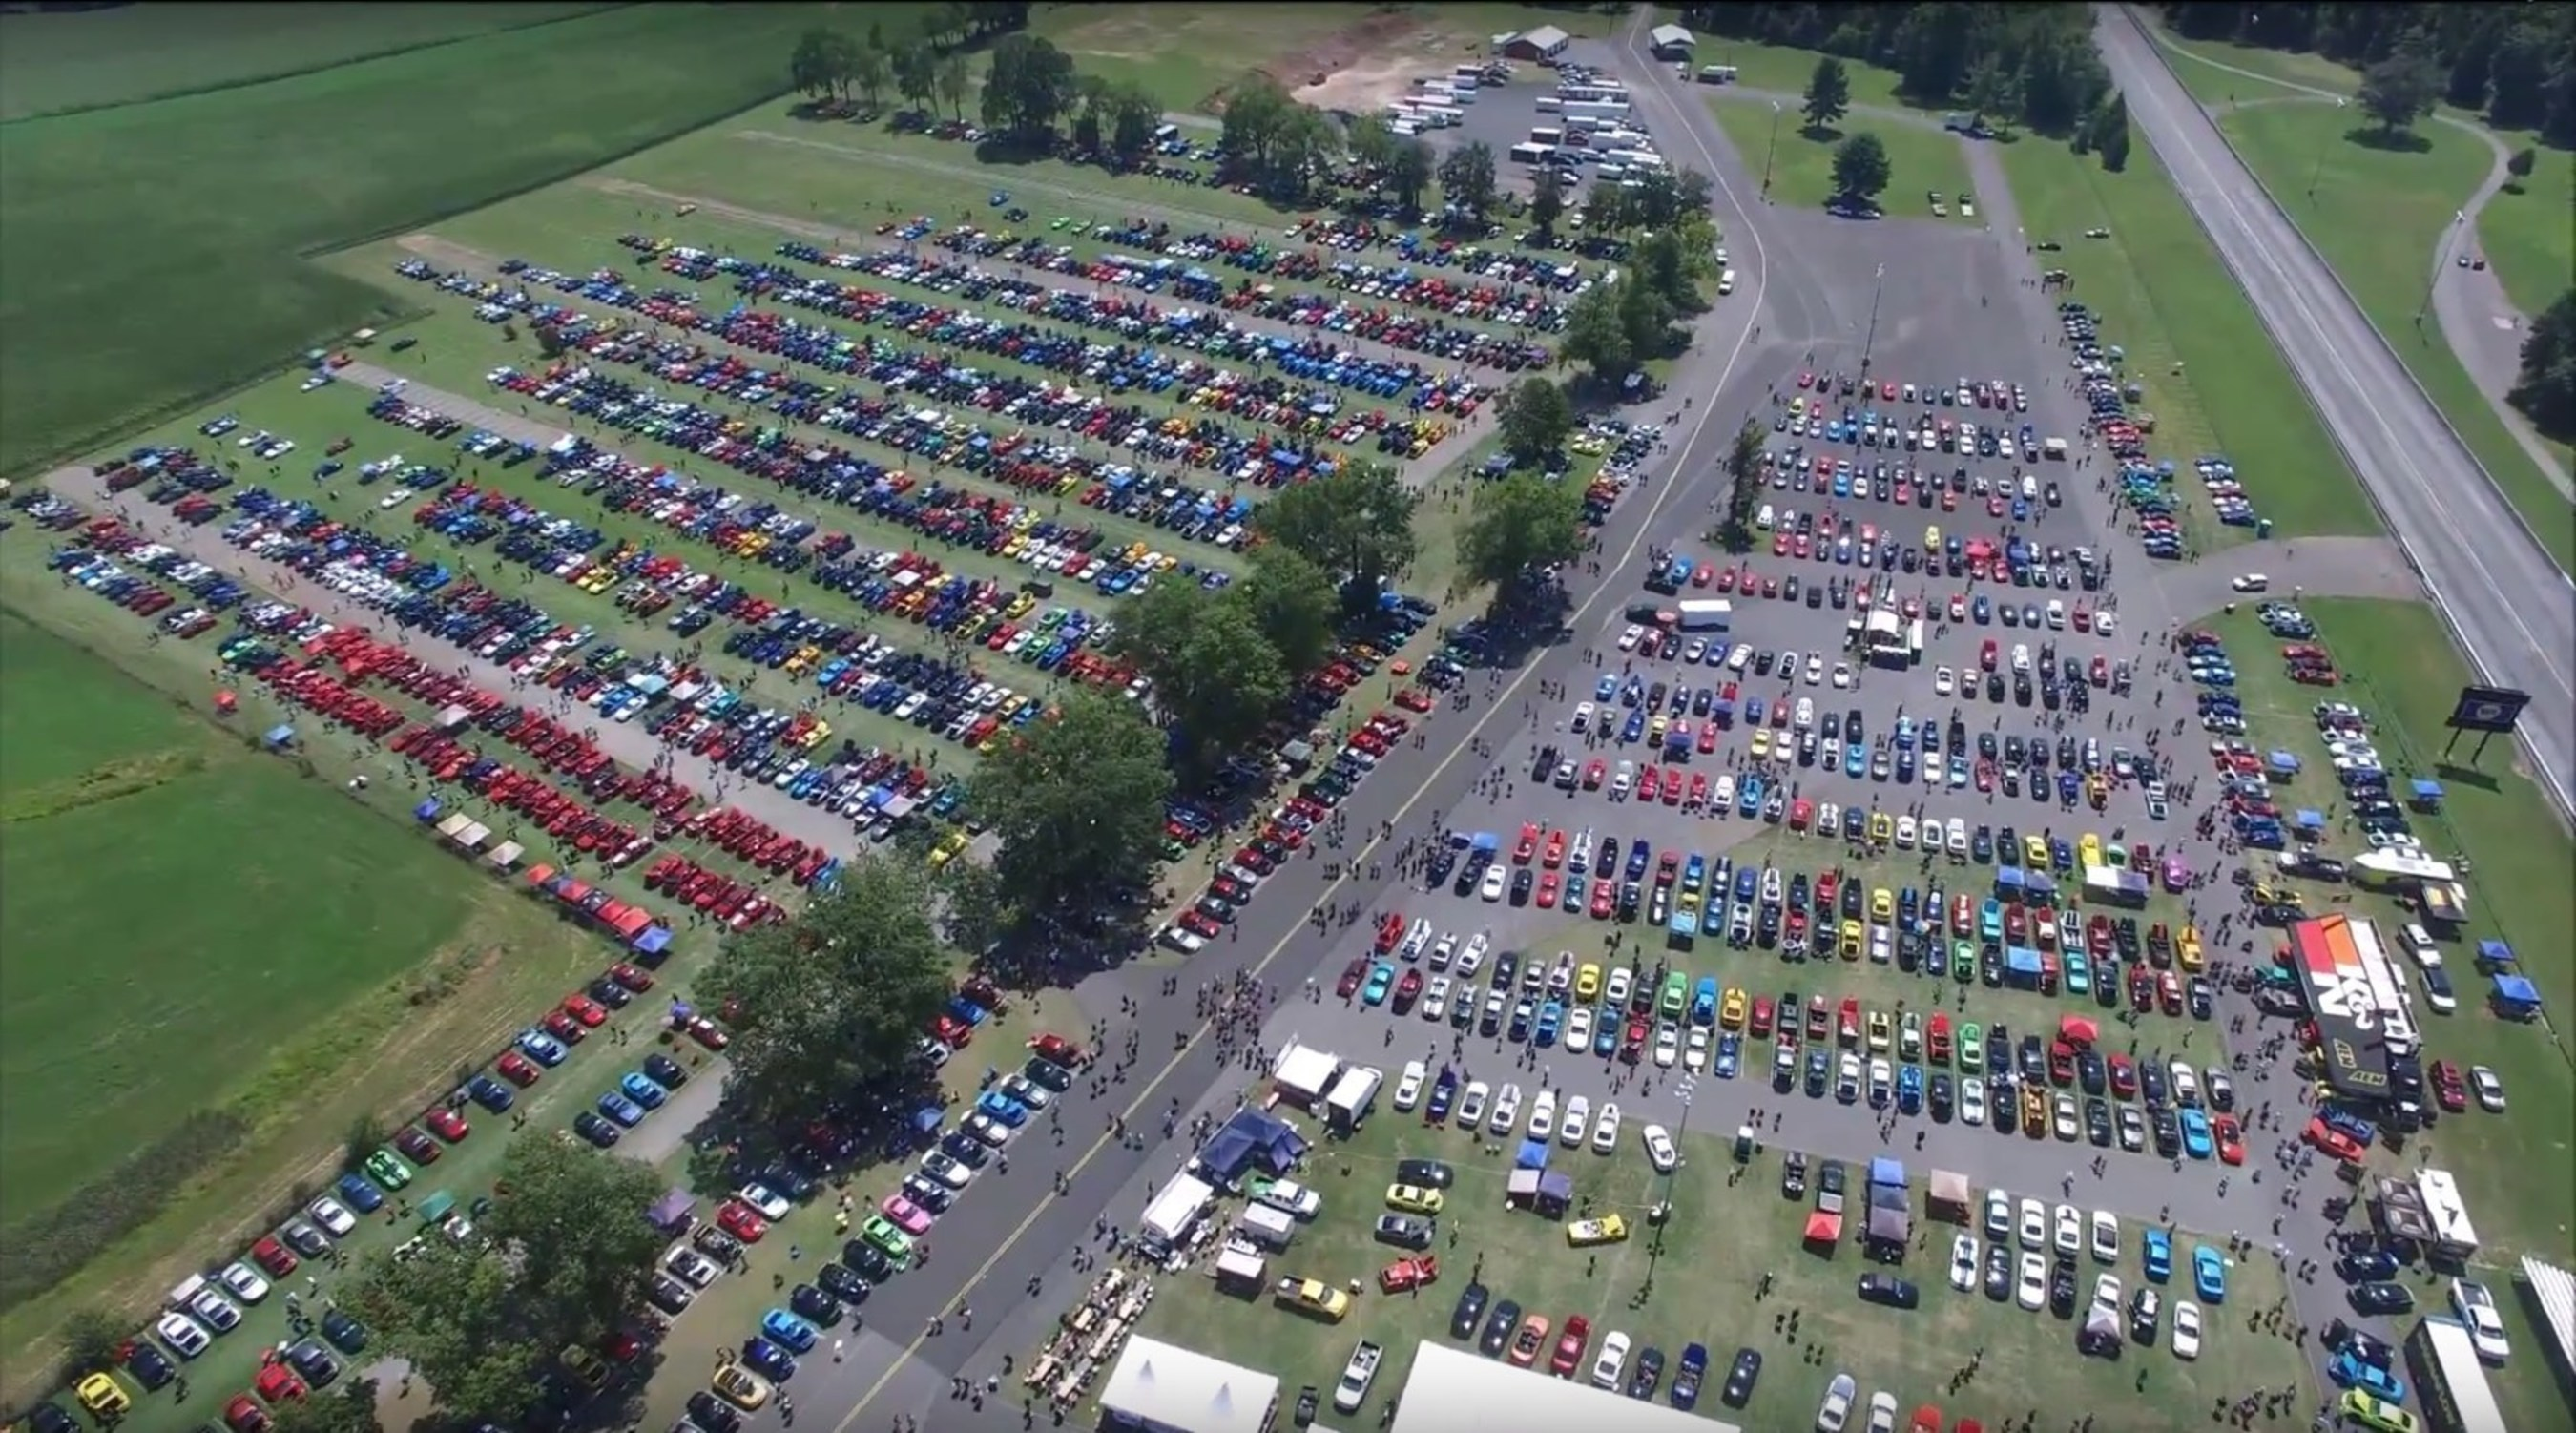 AmericanMusclecom Hosts Mustangs At Th Annual Car Show - American muscle car show